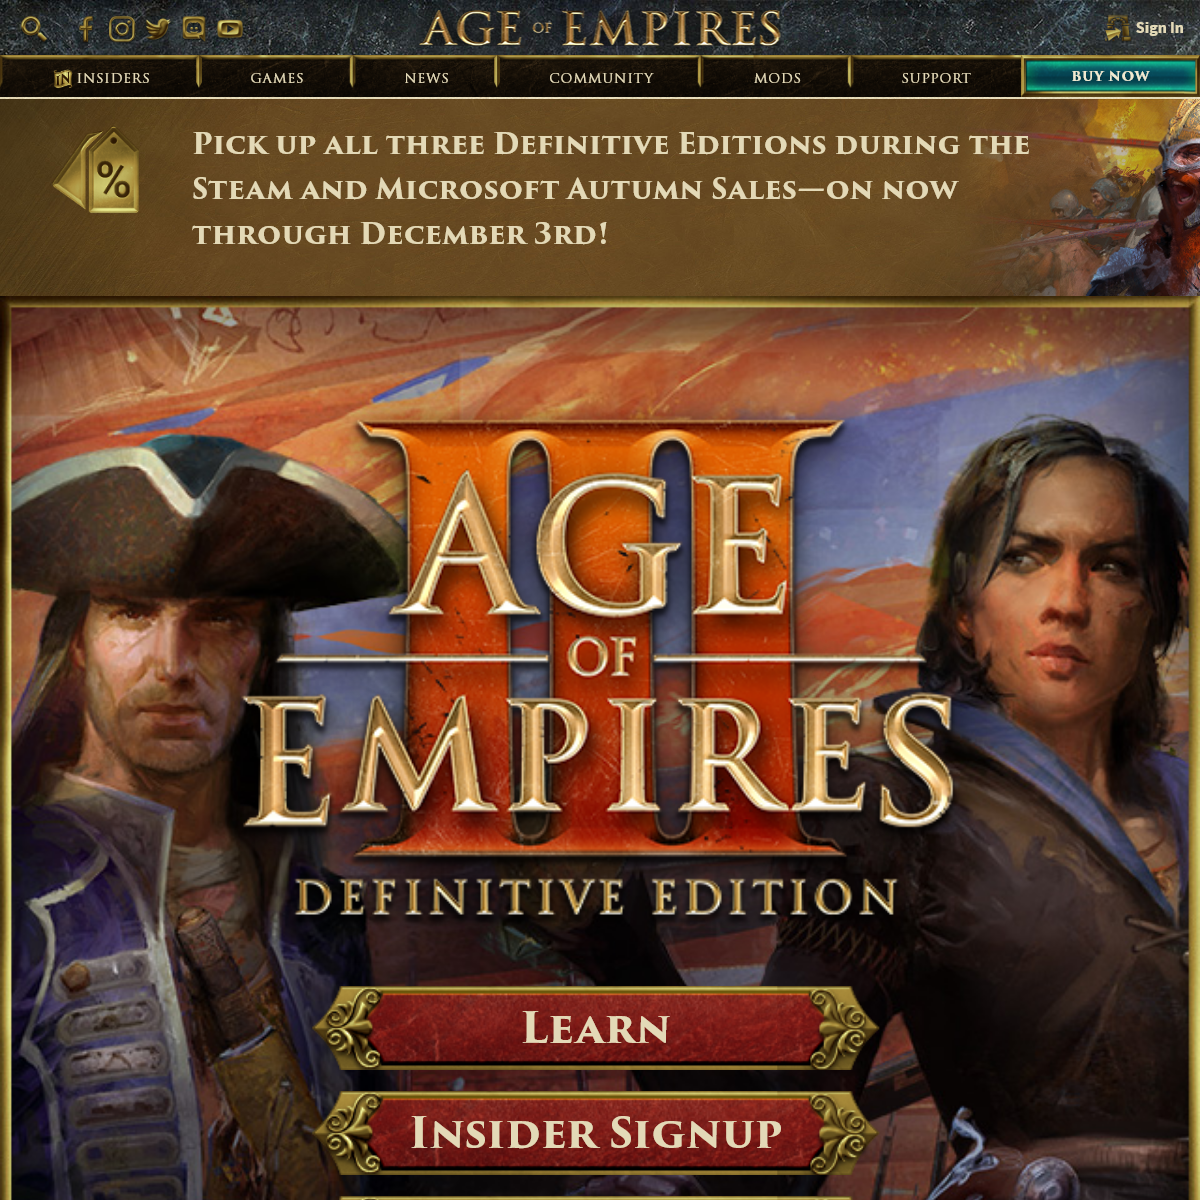 Age of Empires Franchise - Official Web Site